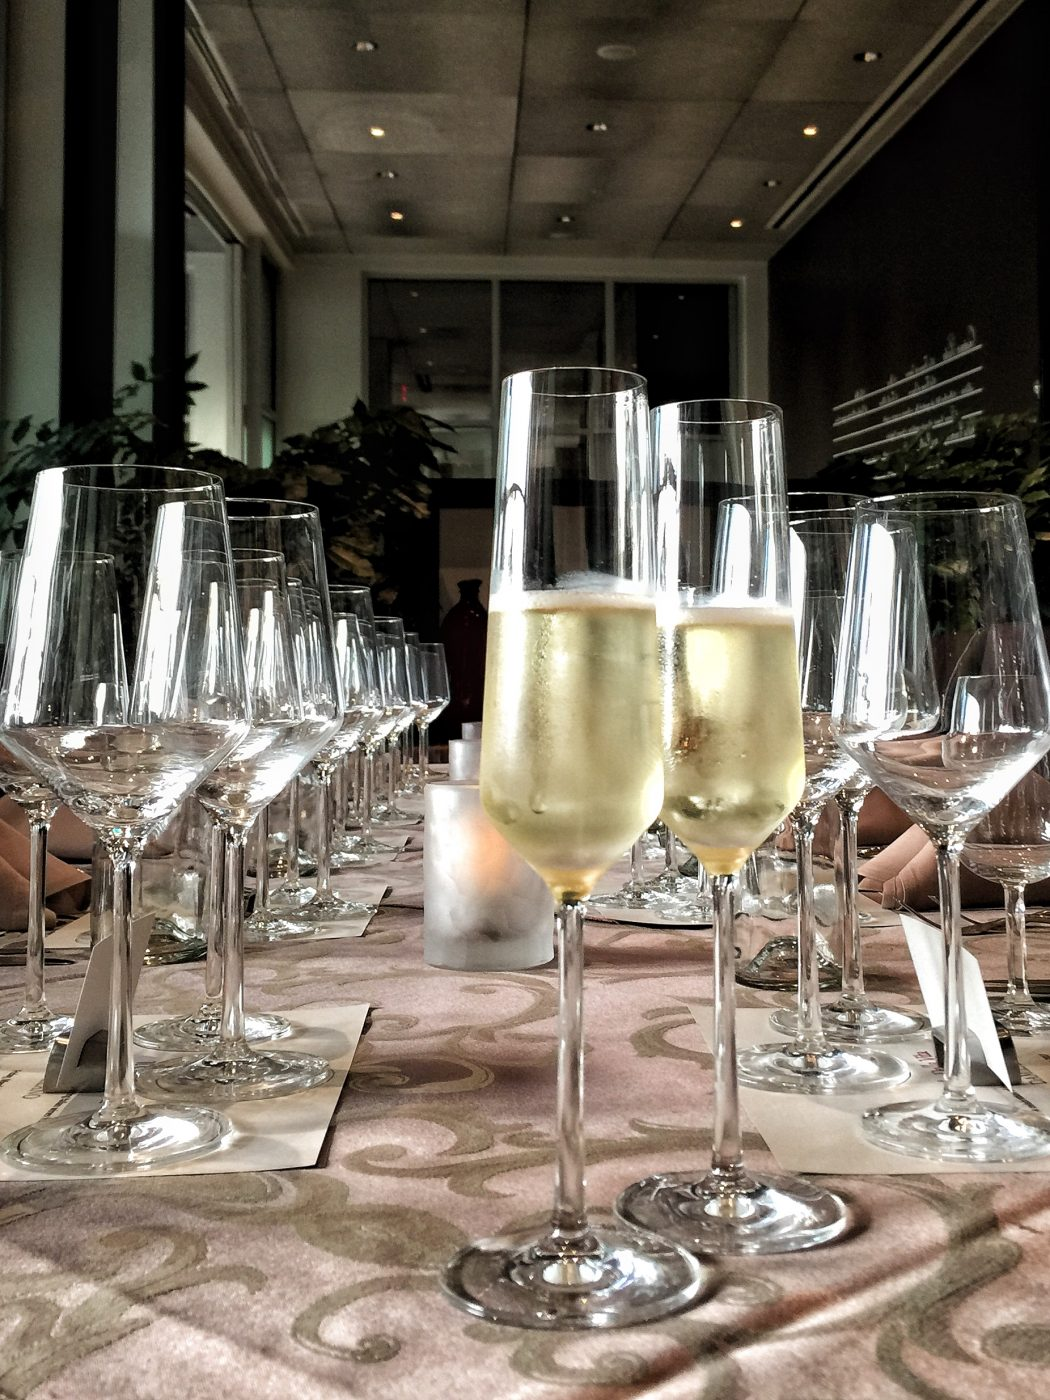 Our Five Course Italian Wine Pairing Dinner at La Luce in the Hilton Bonnet Creek